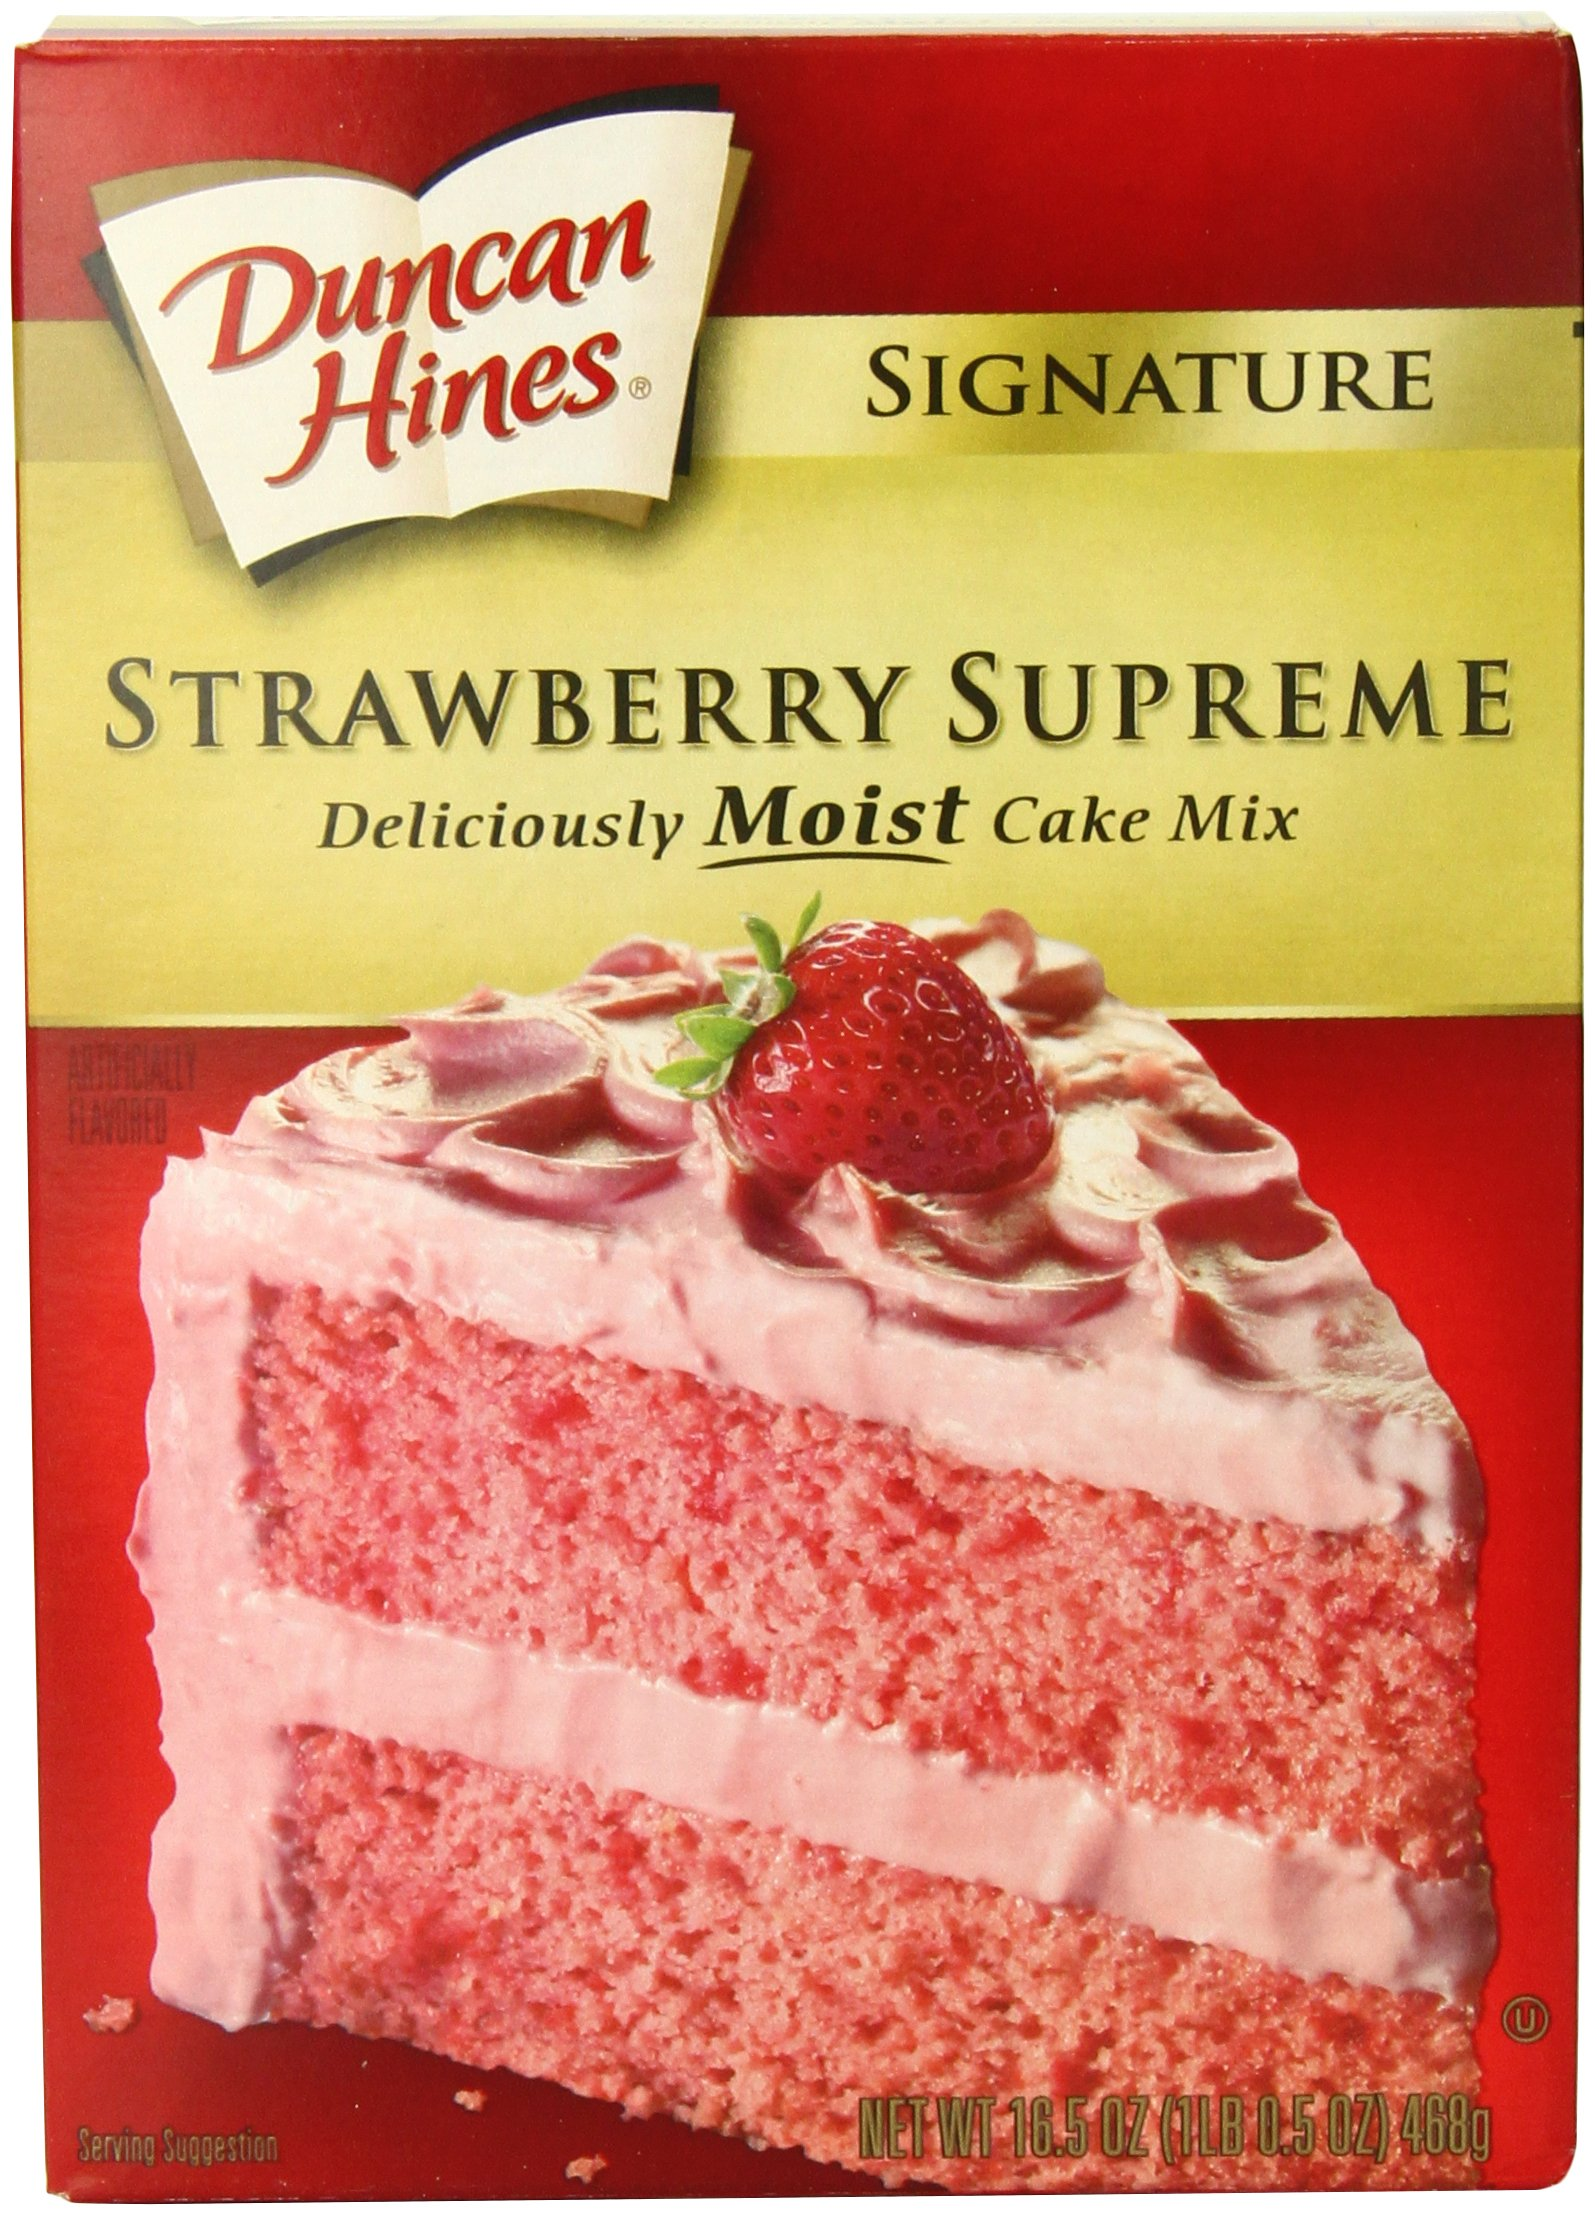 Duncan Hines Signature Strawberry Cake Mix, 16.5-Ounce Boxes (Pack of 6)